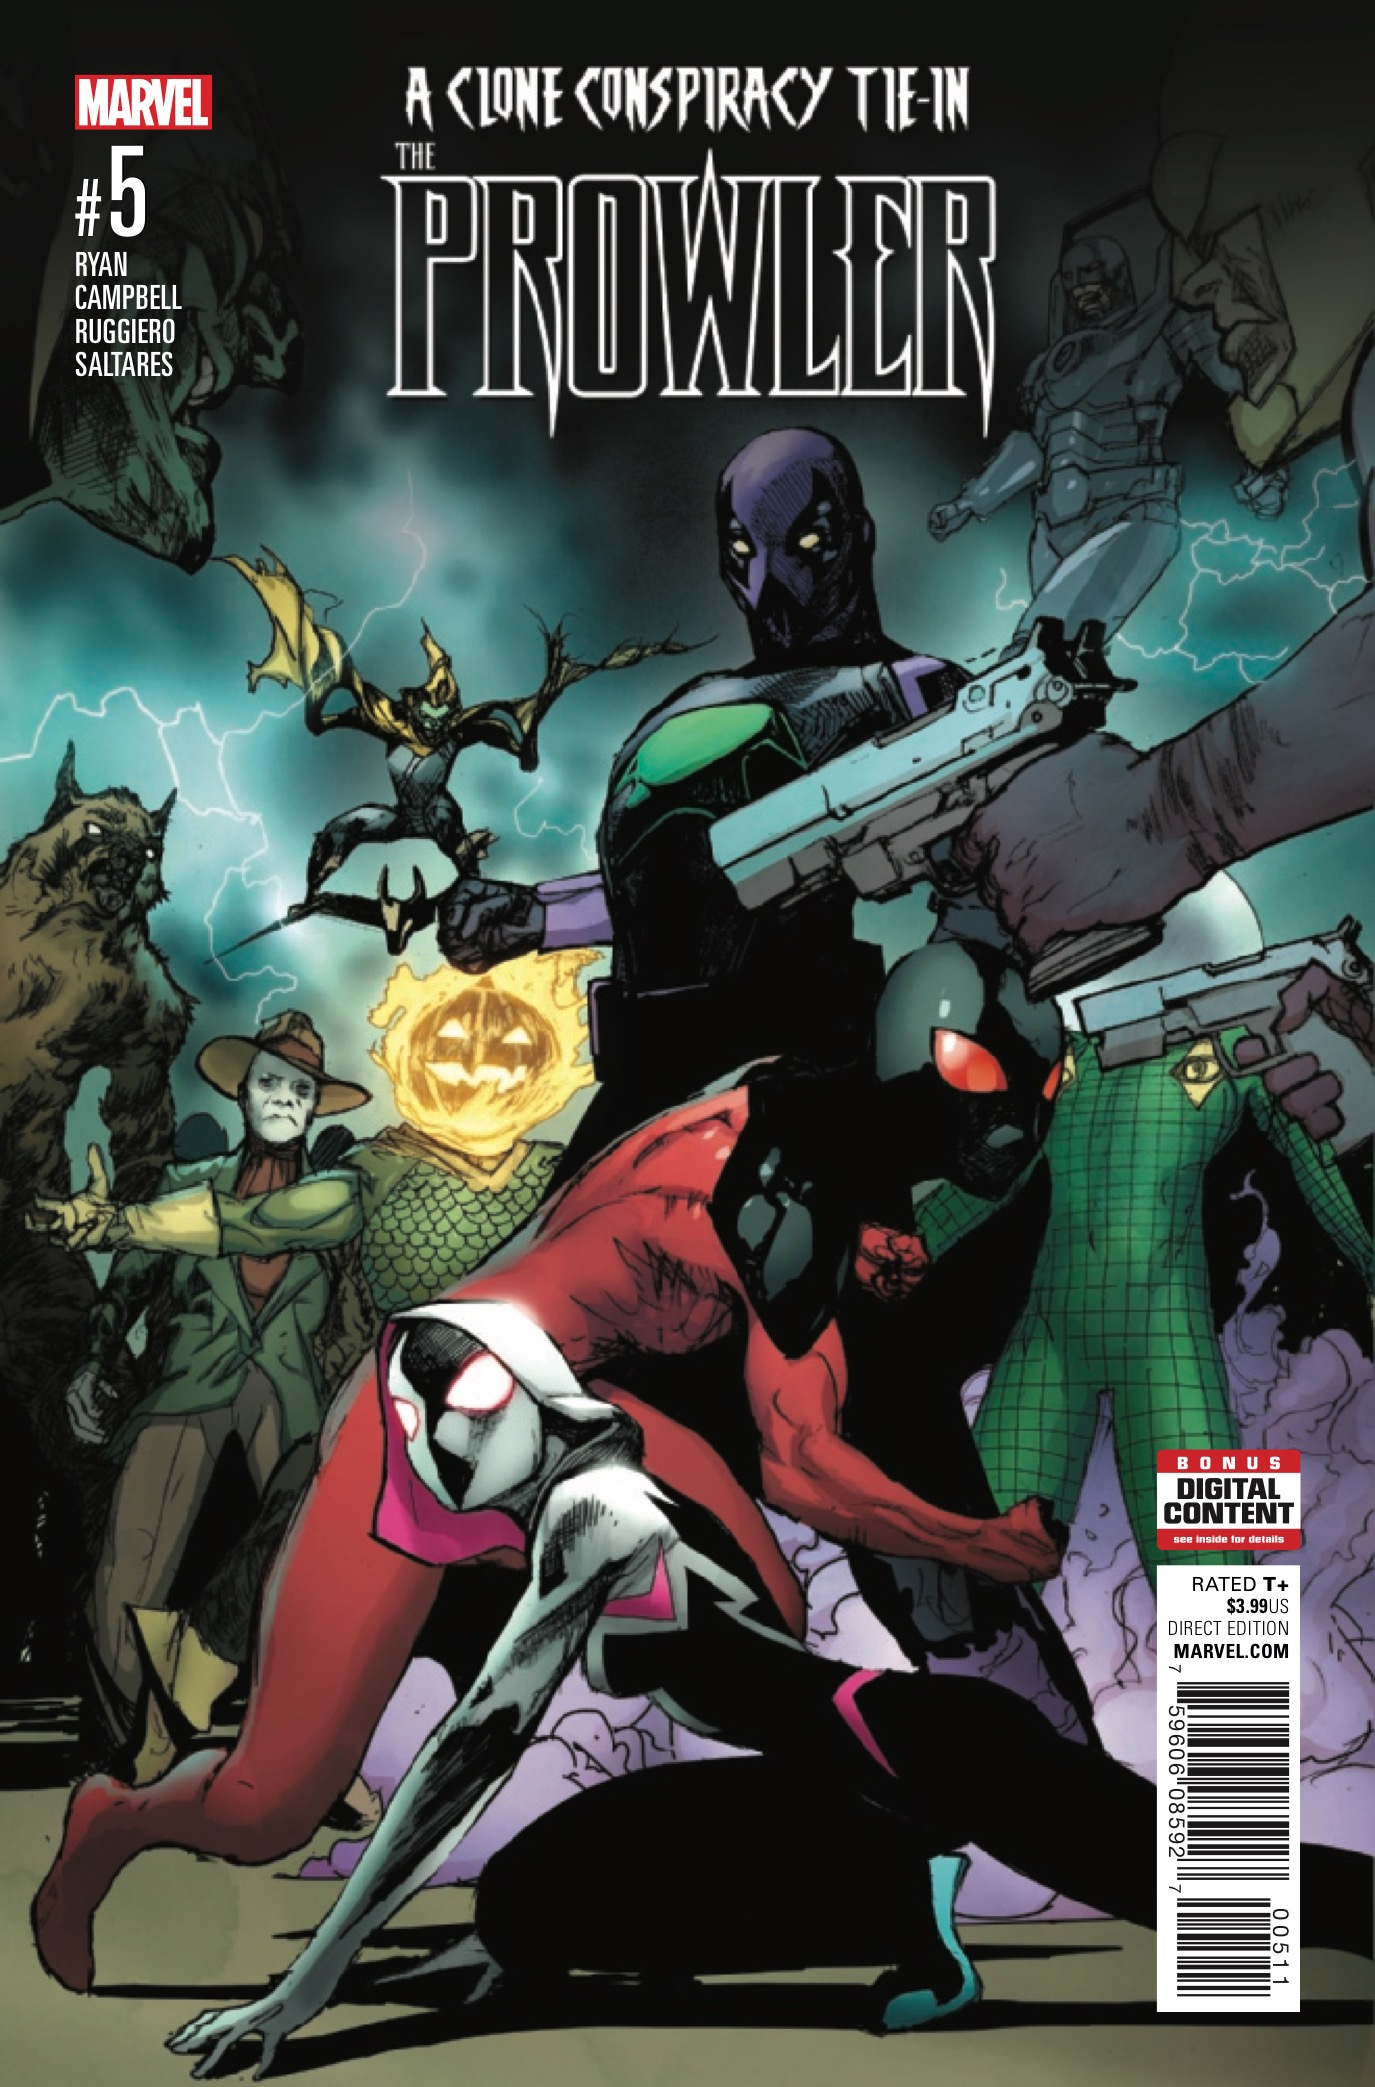 The Prowler #5 Review